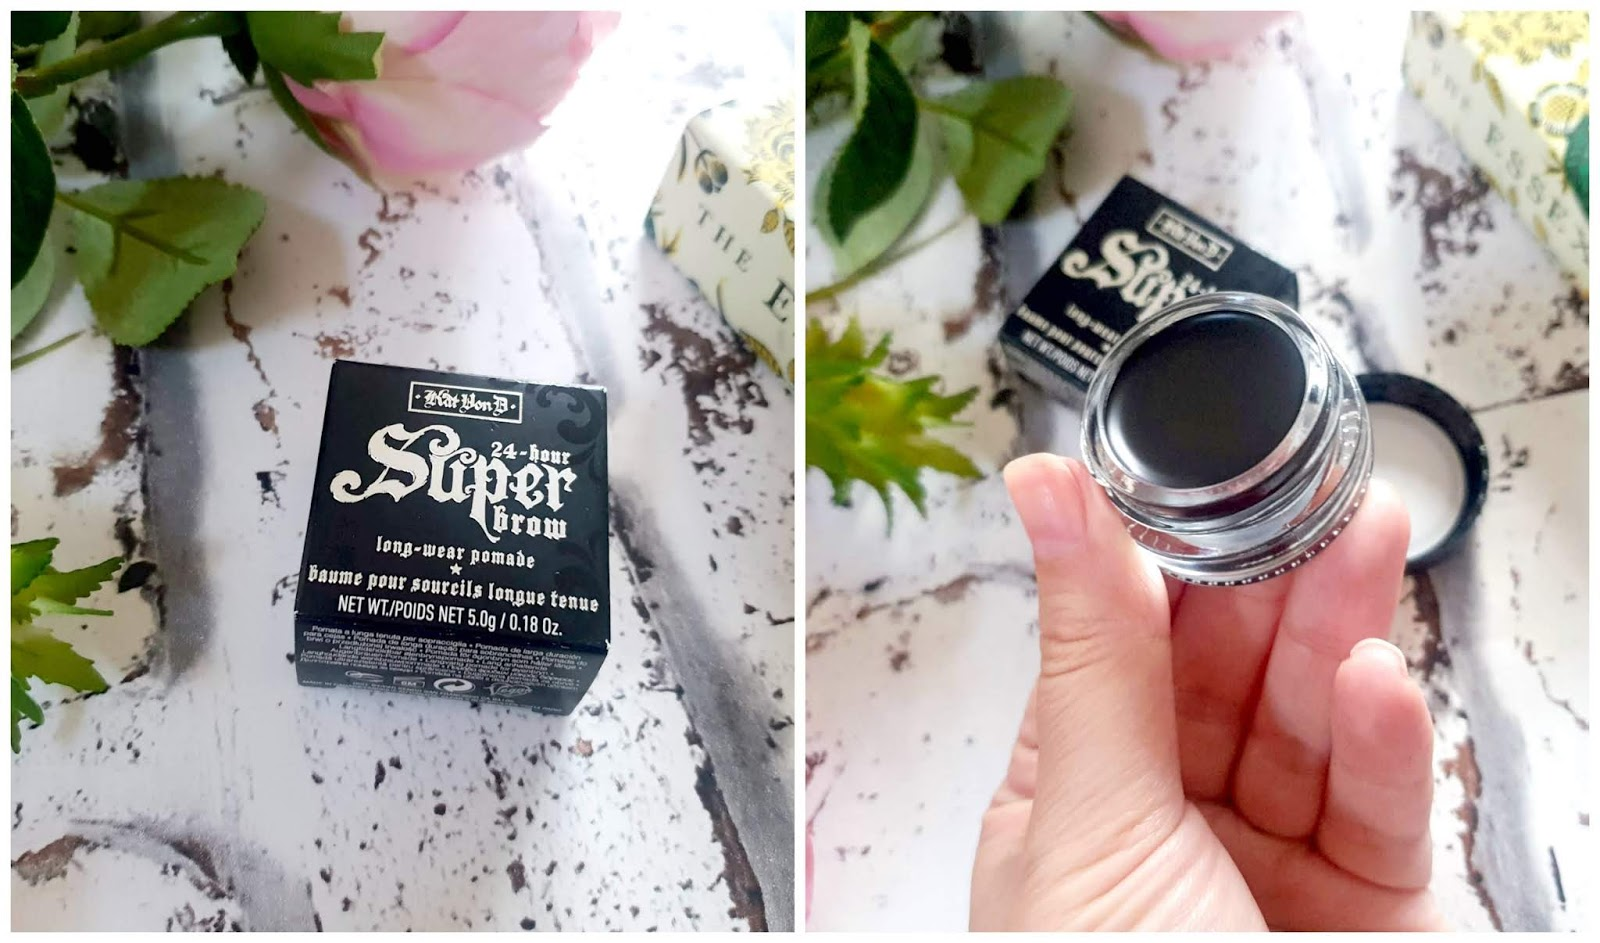 Kat Von D 'Super Brow' 24 Hour Long-Wear Pomade